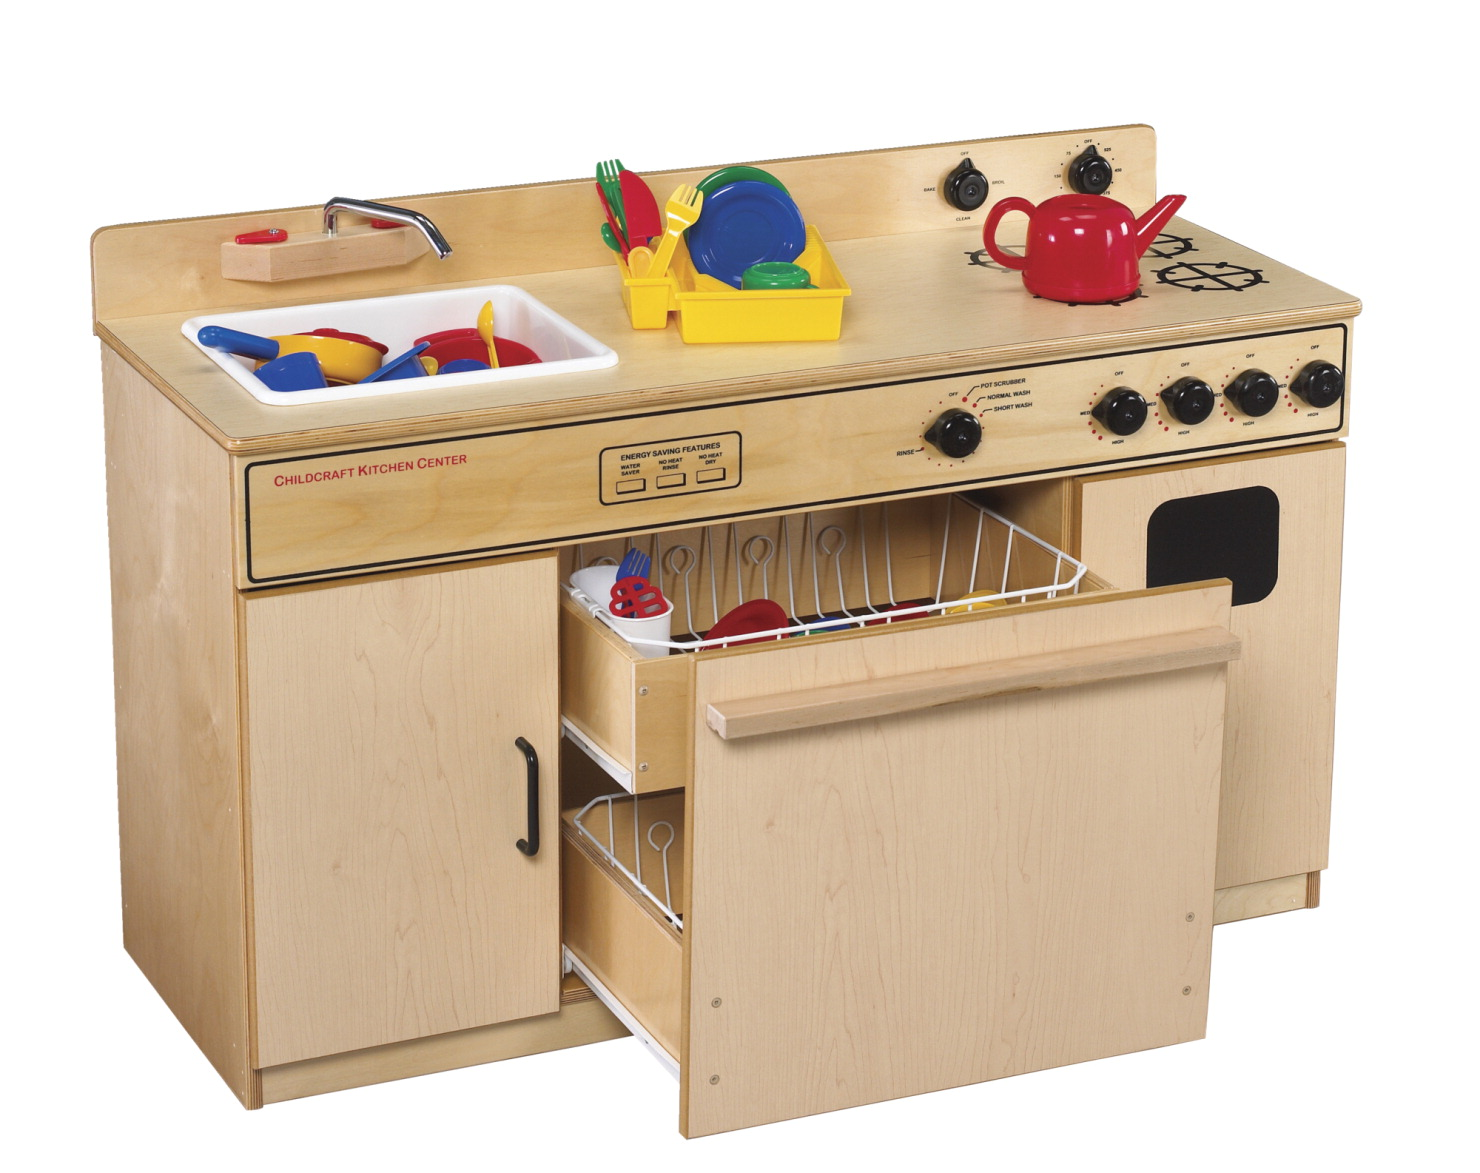 Childcraft All In One Kitchen Center 43 1 2 X 16 1 4 X 27 3 4 Inches